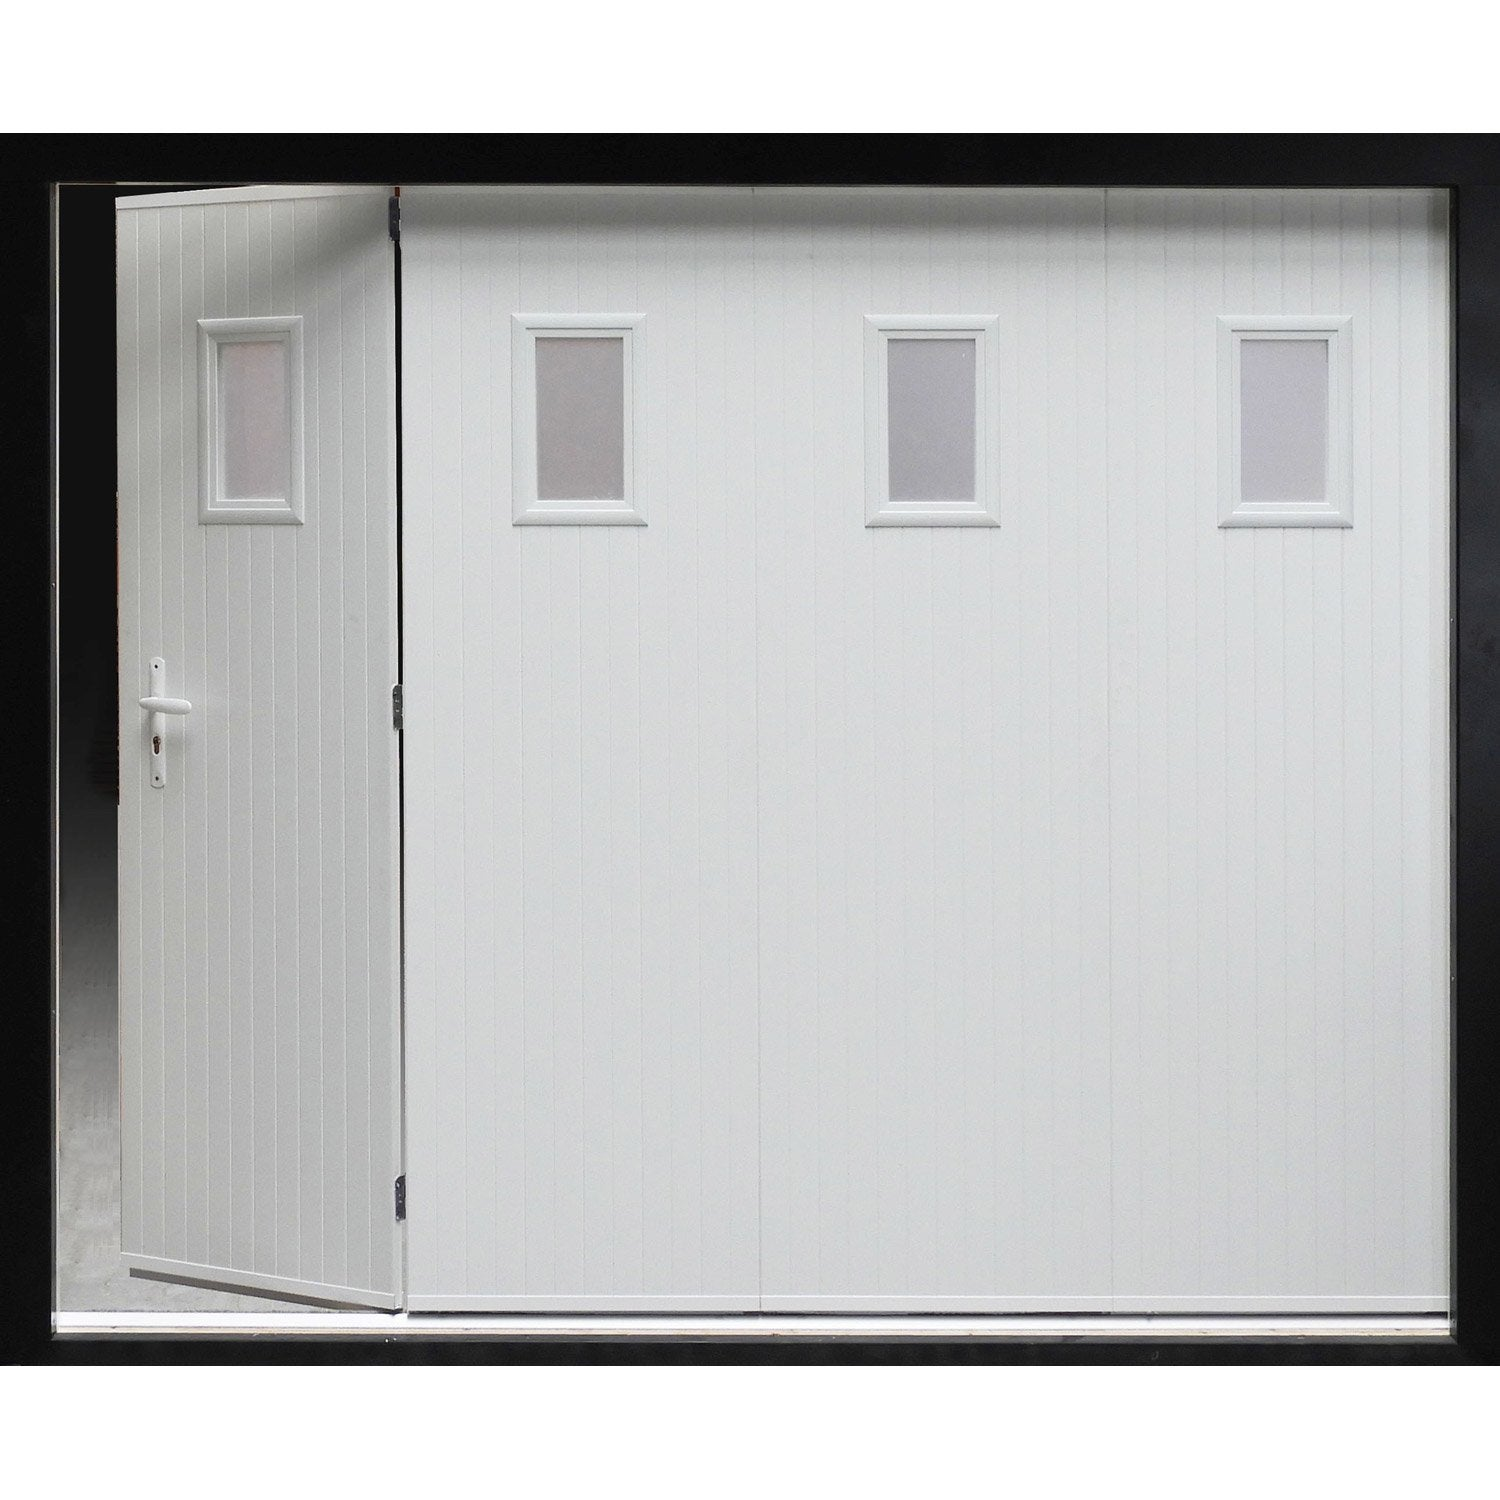 Porte de garage coulissante manuelle artens x for Castorama porte garage sectionnelle